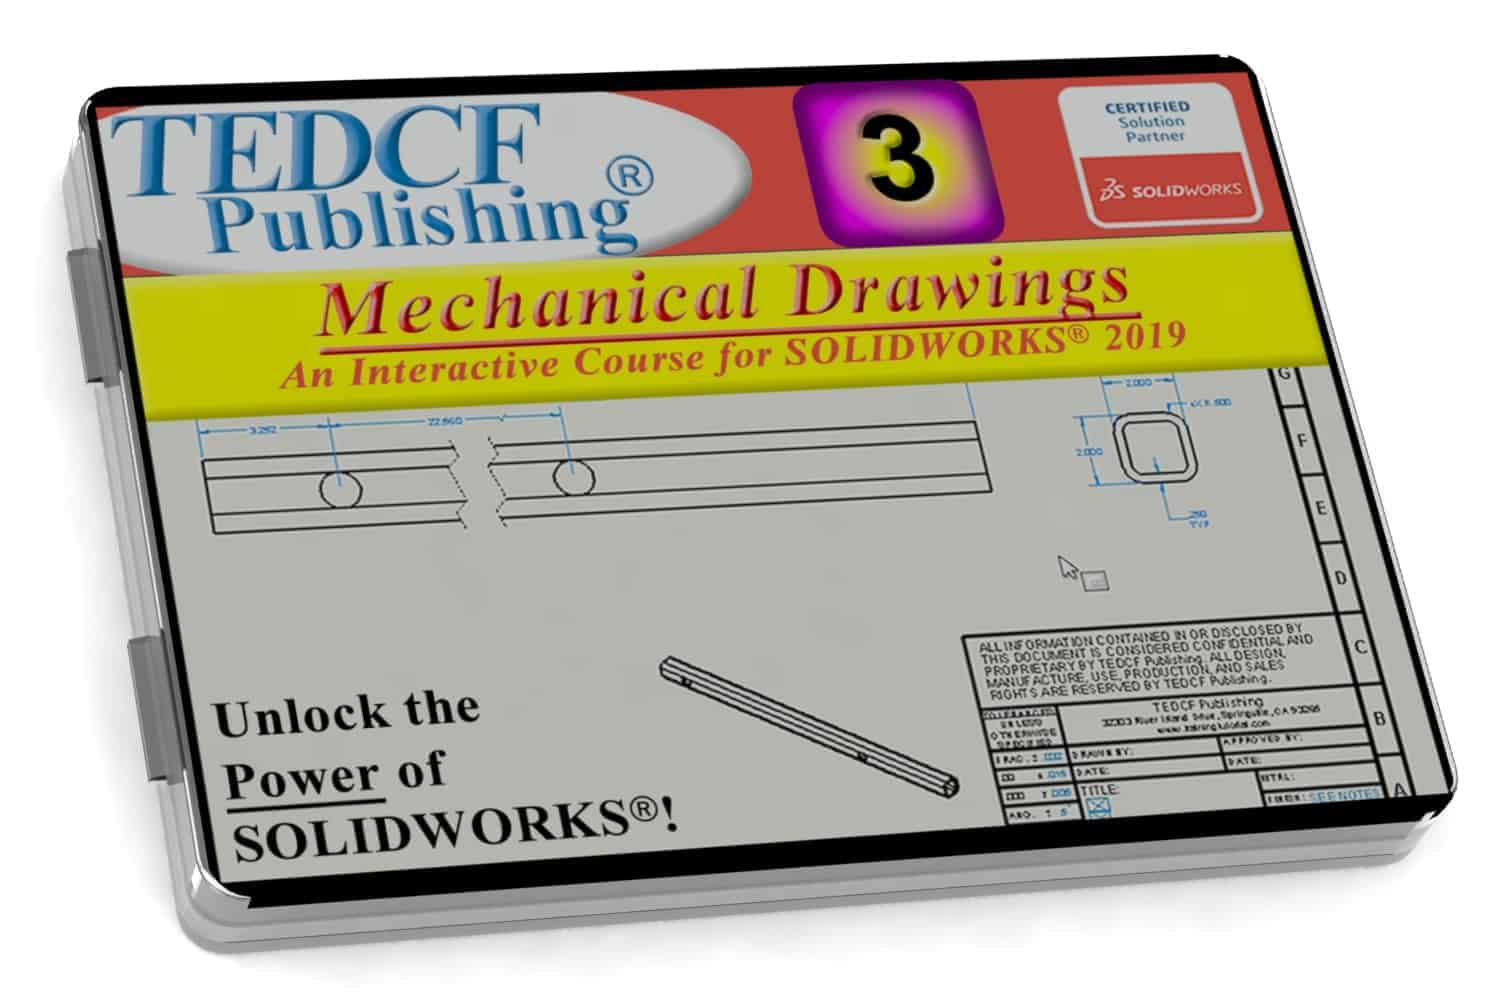 SolidWorks 2019 Mechanical Drawings Training Course